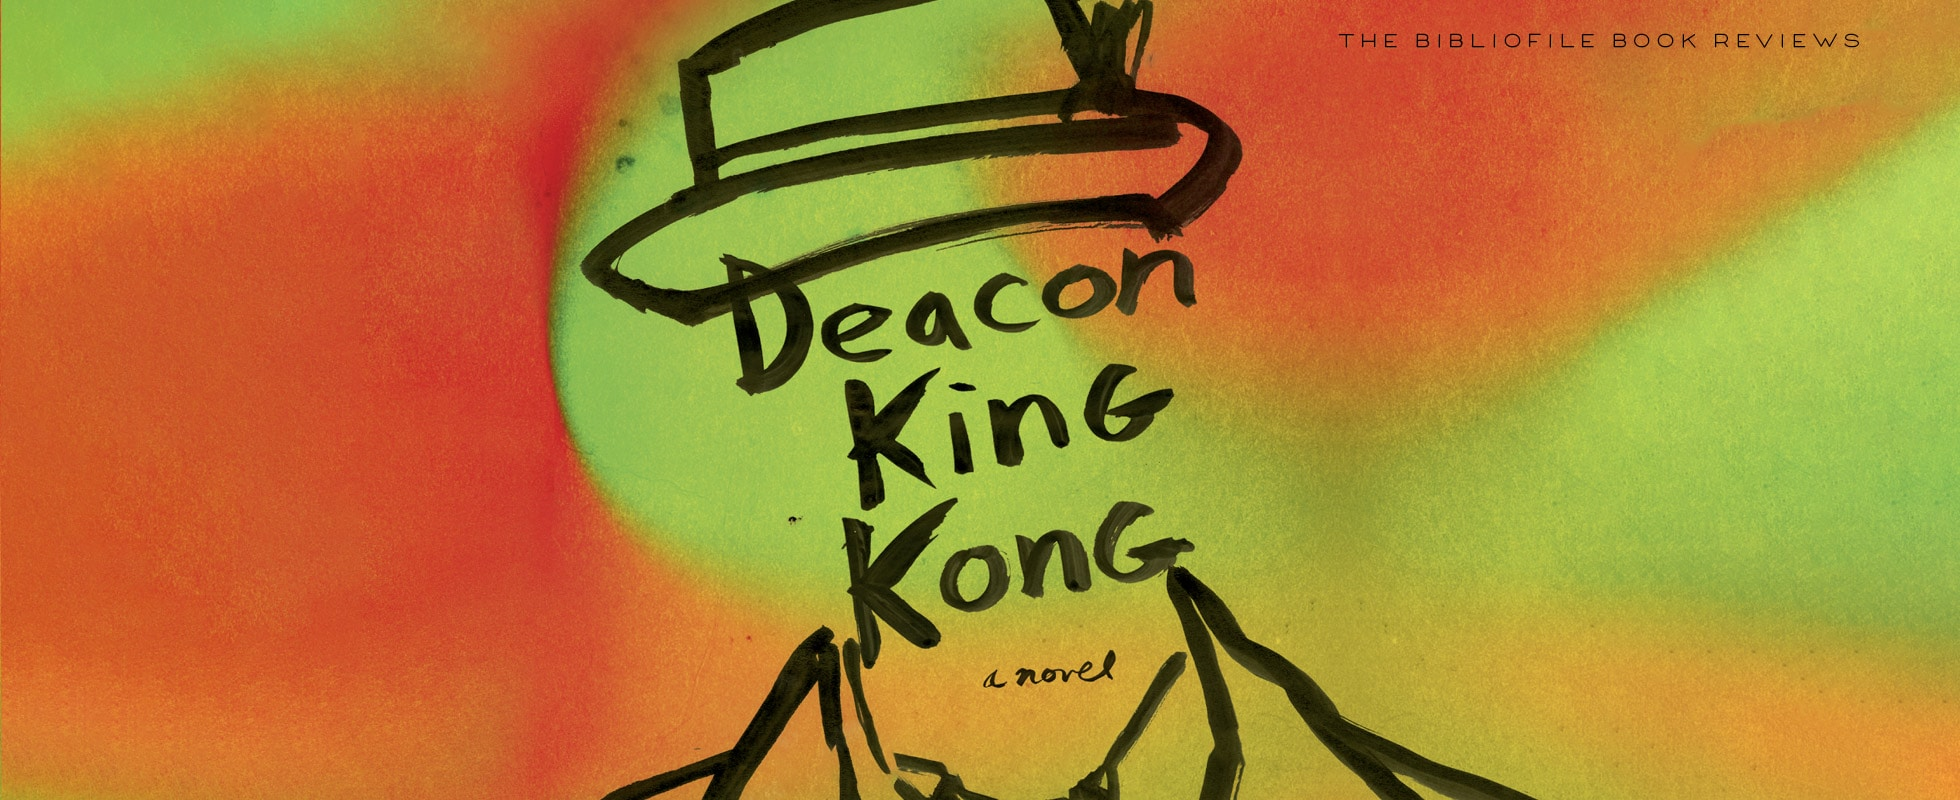 Deacon King Kong by James McBride summary synopsis plot book review